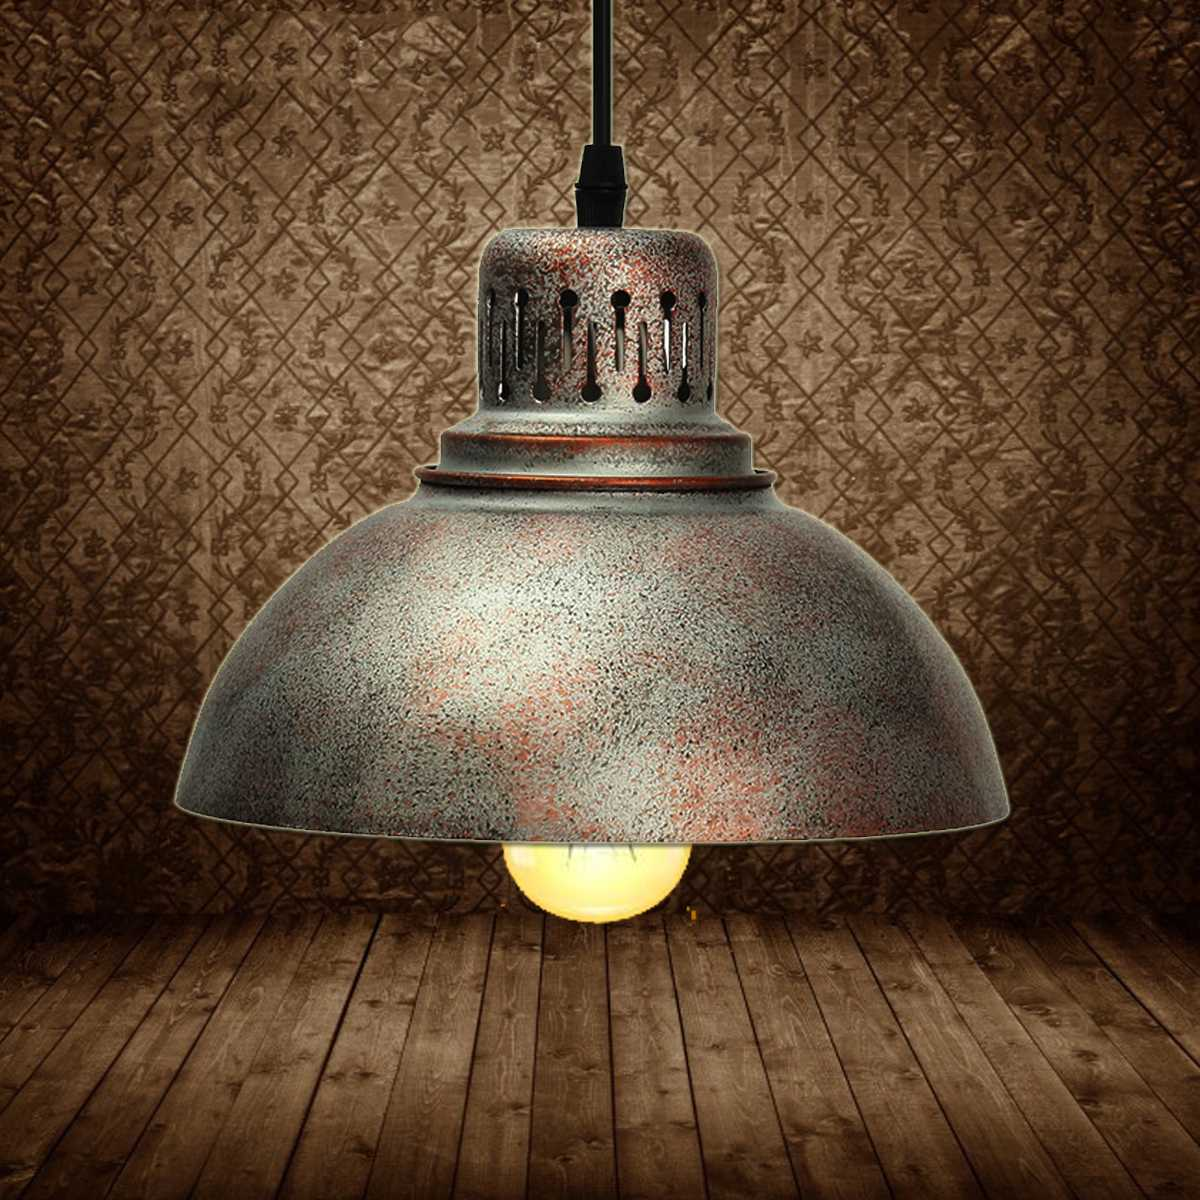 Industrial Vintage Pendant Lights Hanging E27 Iron Lampshade Night Lamp Fixture Loft Bar Living Room Home Decor Novelty Lighting vintage rustic metal lampshade loft edison pendant lamp lights retro iron hanging lamp fixture industrial lighting lamparas